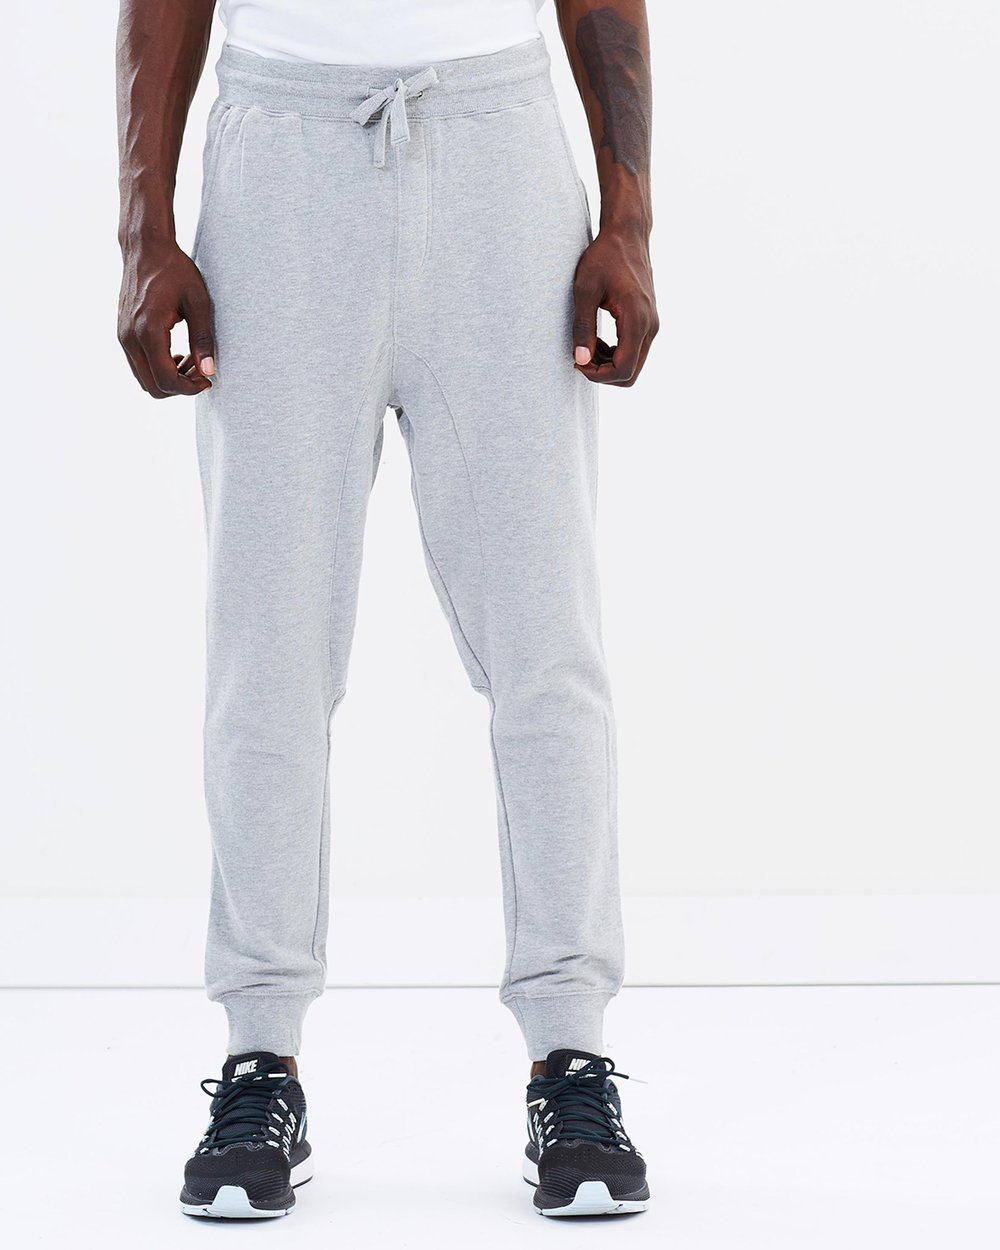 634573c008c16 Men s Warrior Pants by Champion Online